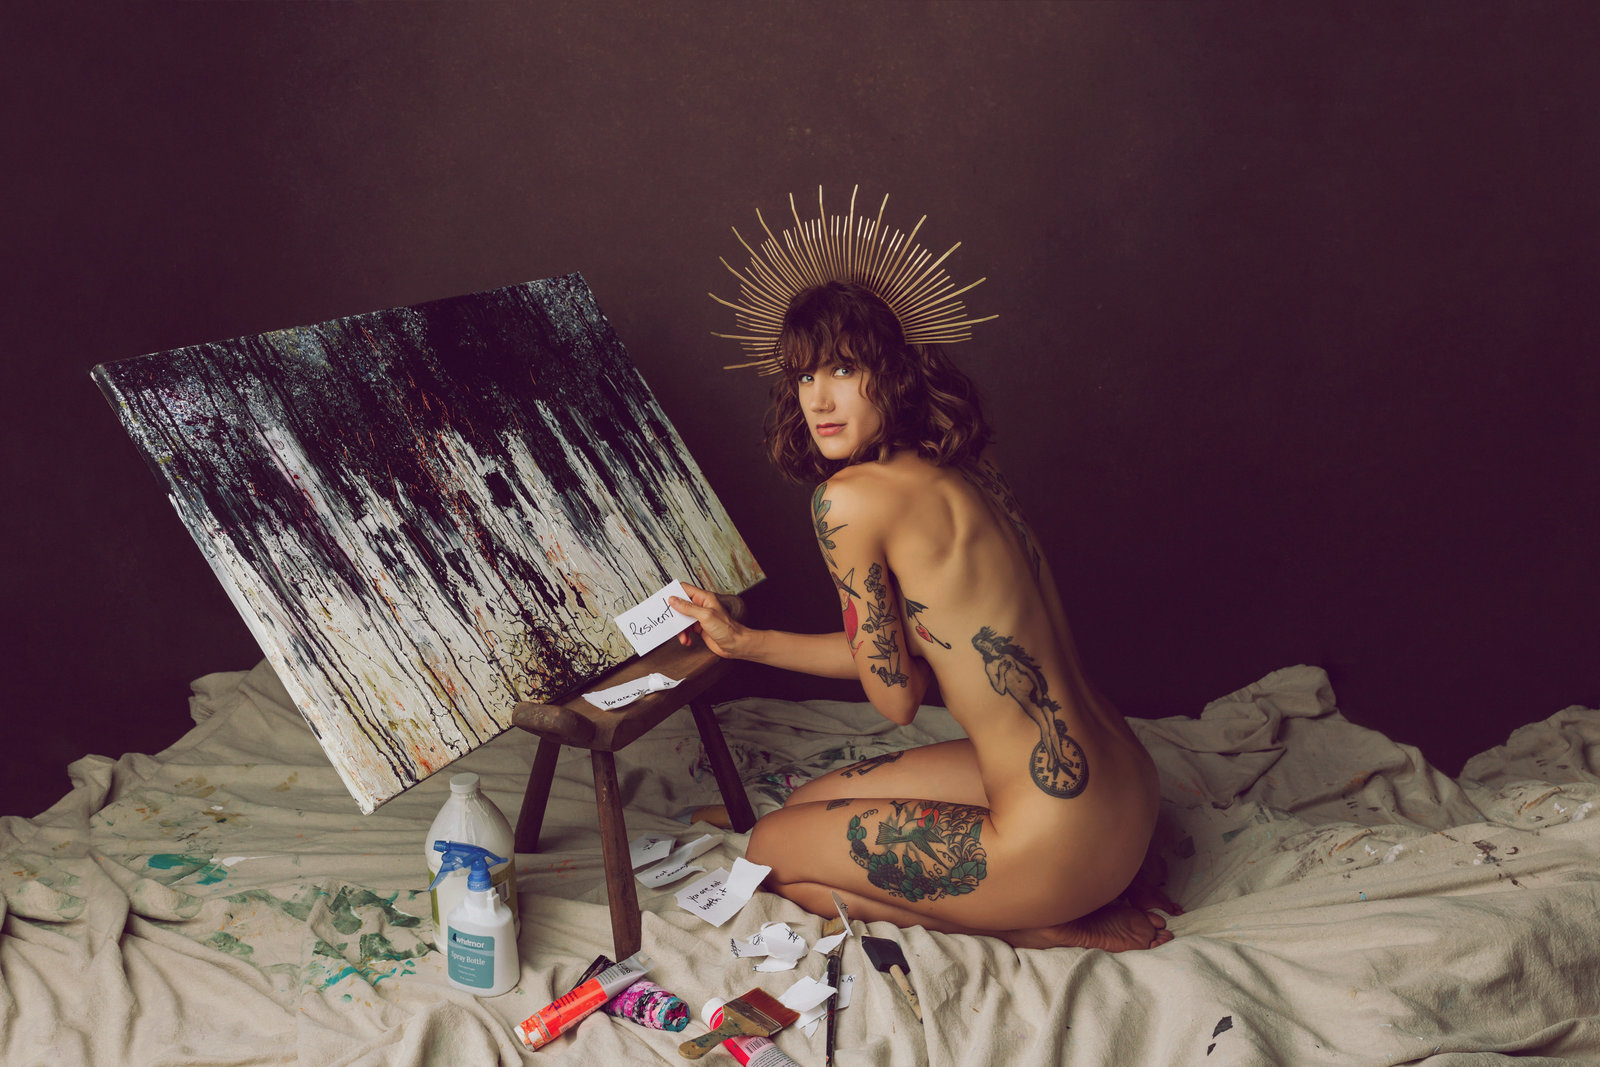 Nude fine art portrait of a woman kneeling on the ground painting, looking over her shoulder at the camera.